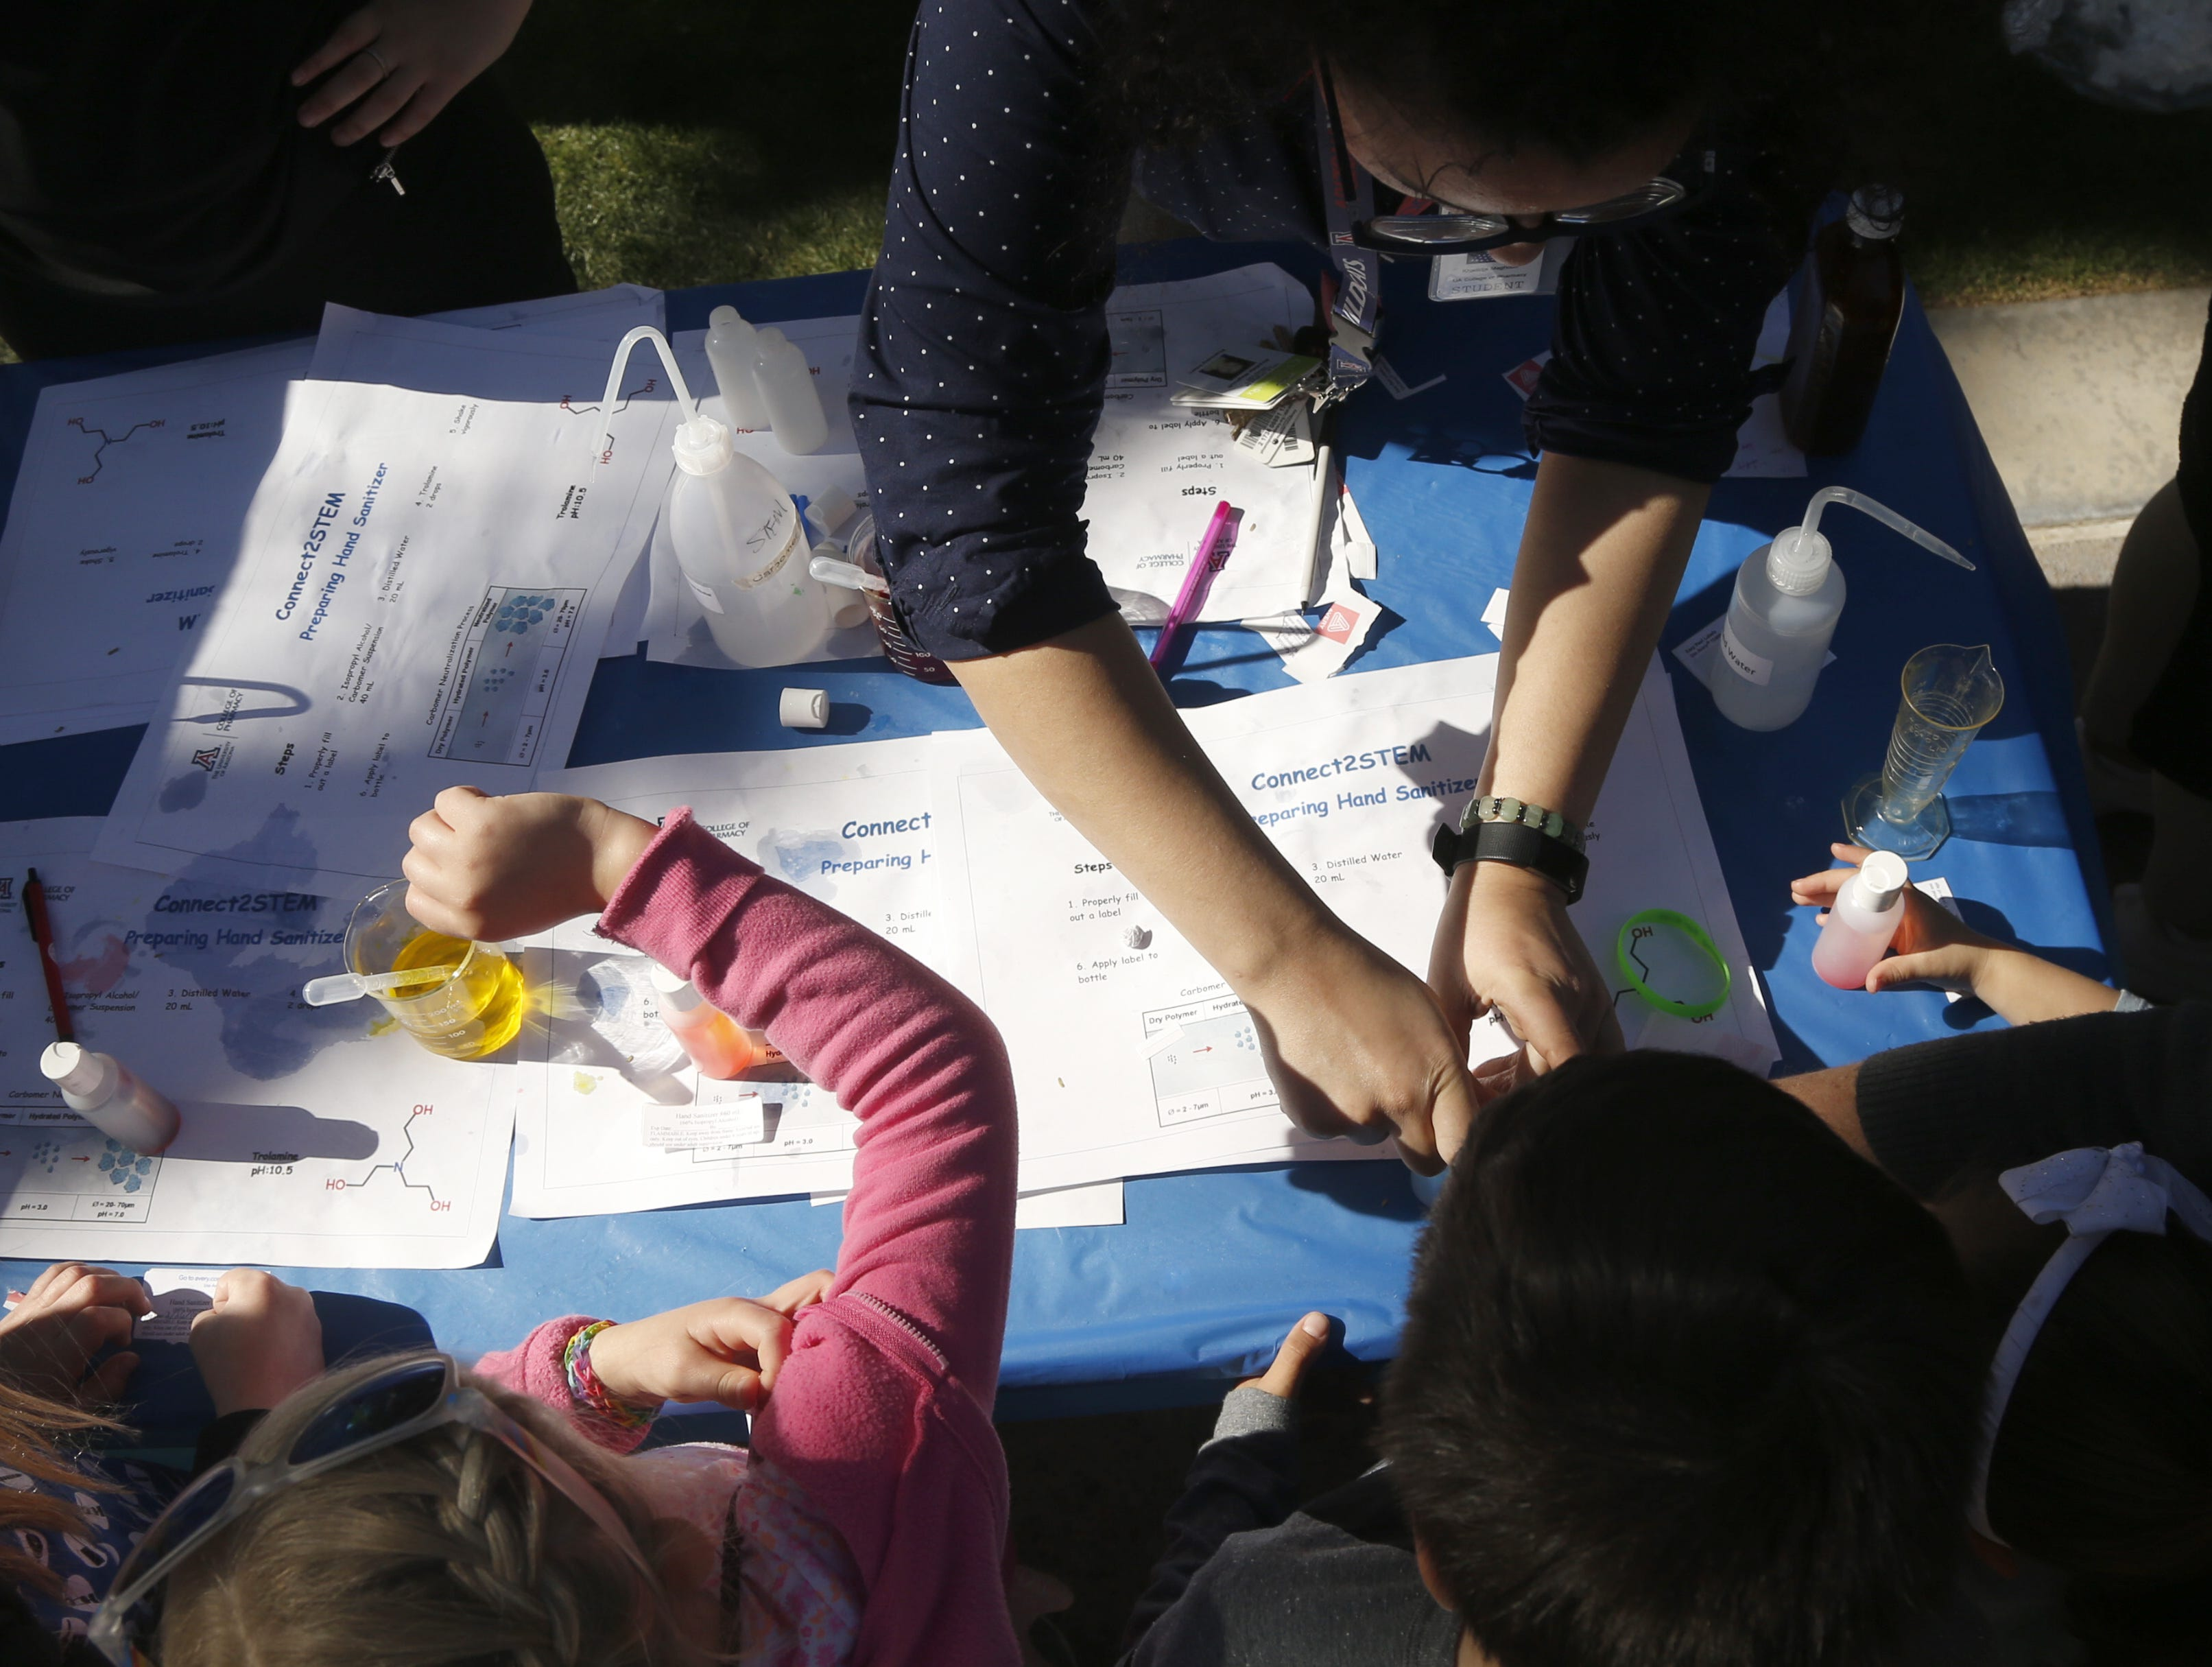 Children learn how to make hand sanitizer during a STEM outreach event in downtown Phoenix, Ariz. on January 26, 2019.